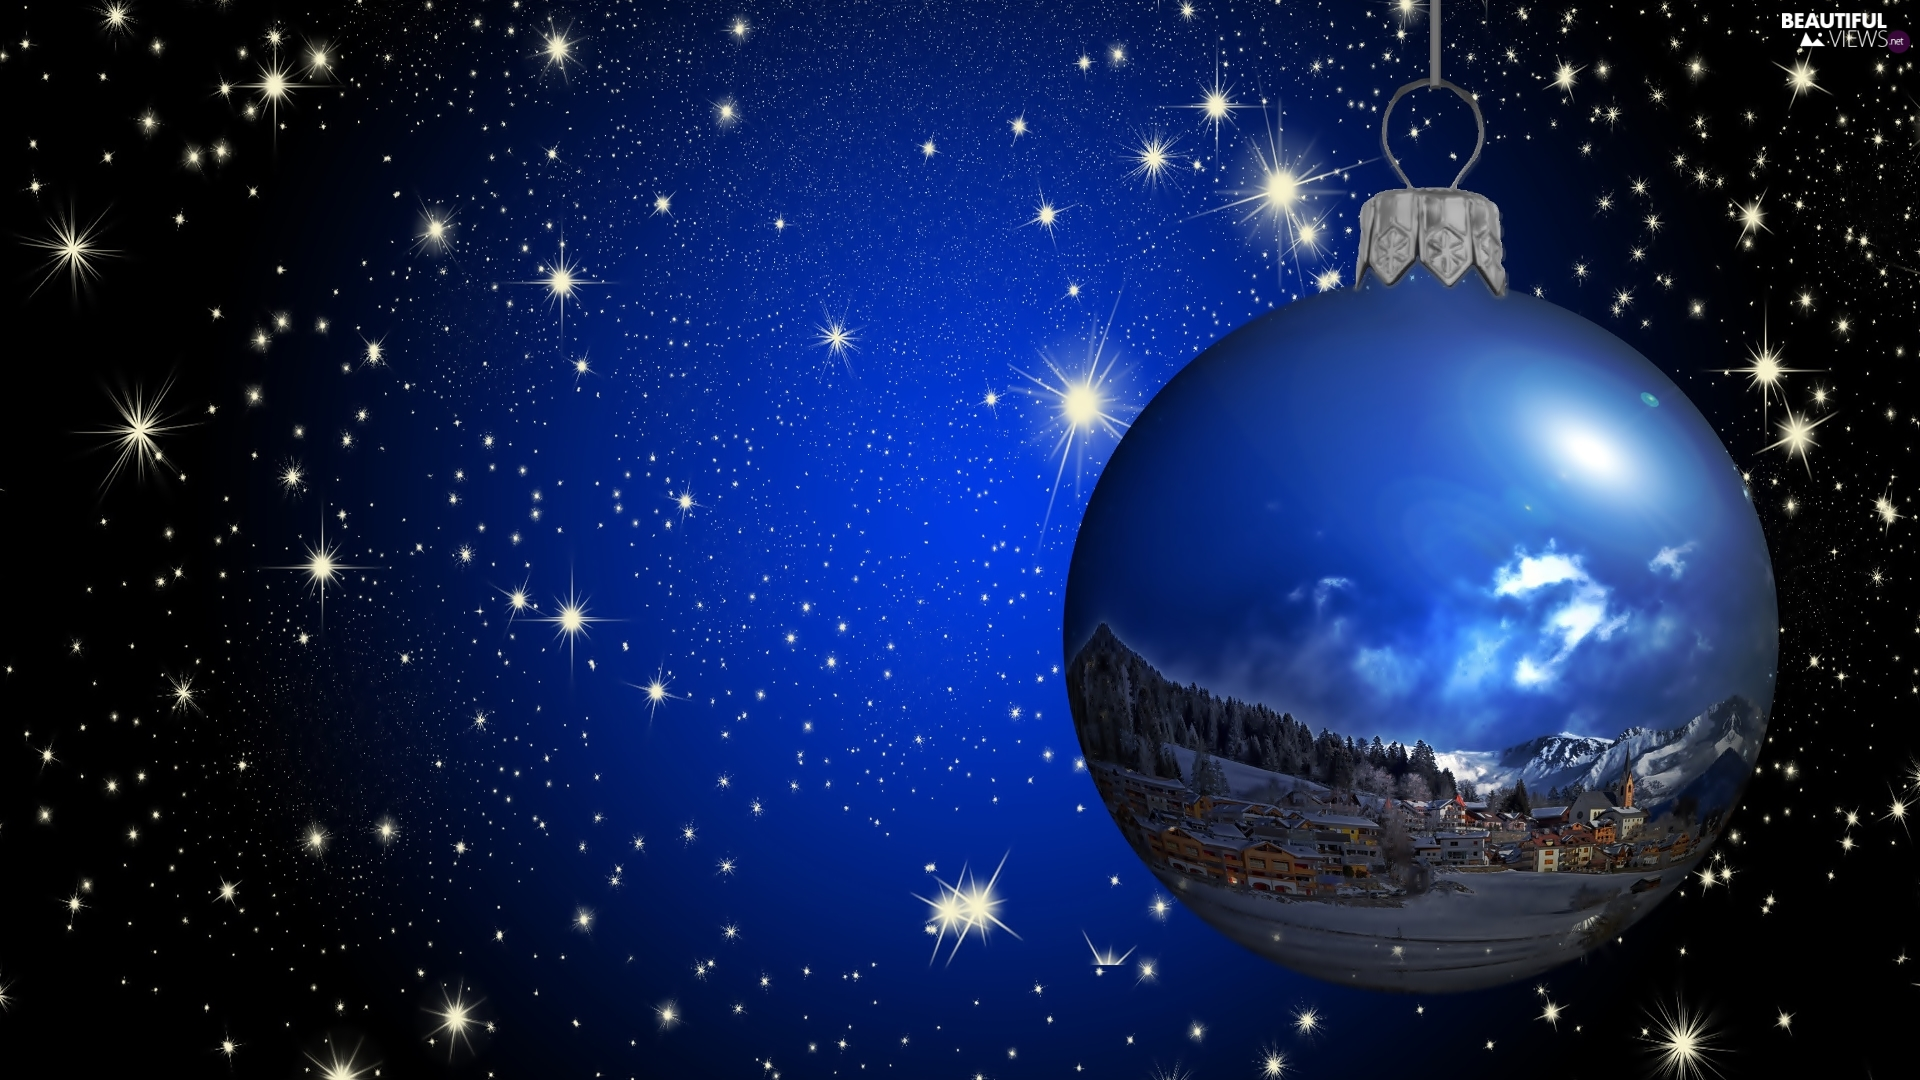 Sky, star, decoration, bauble, Christmas